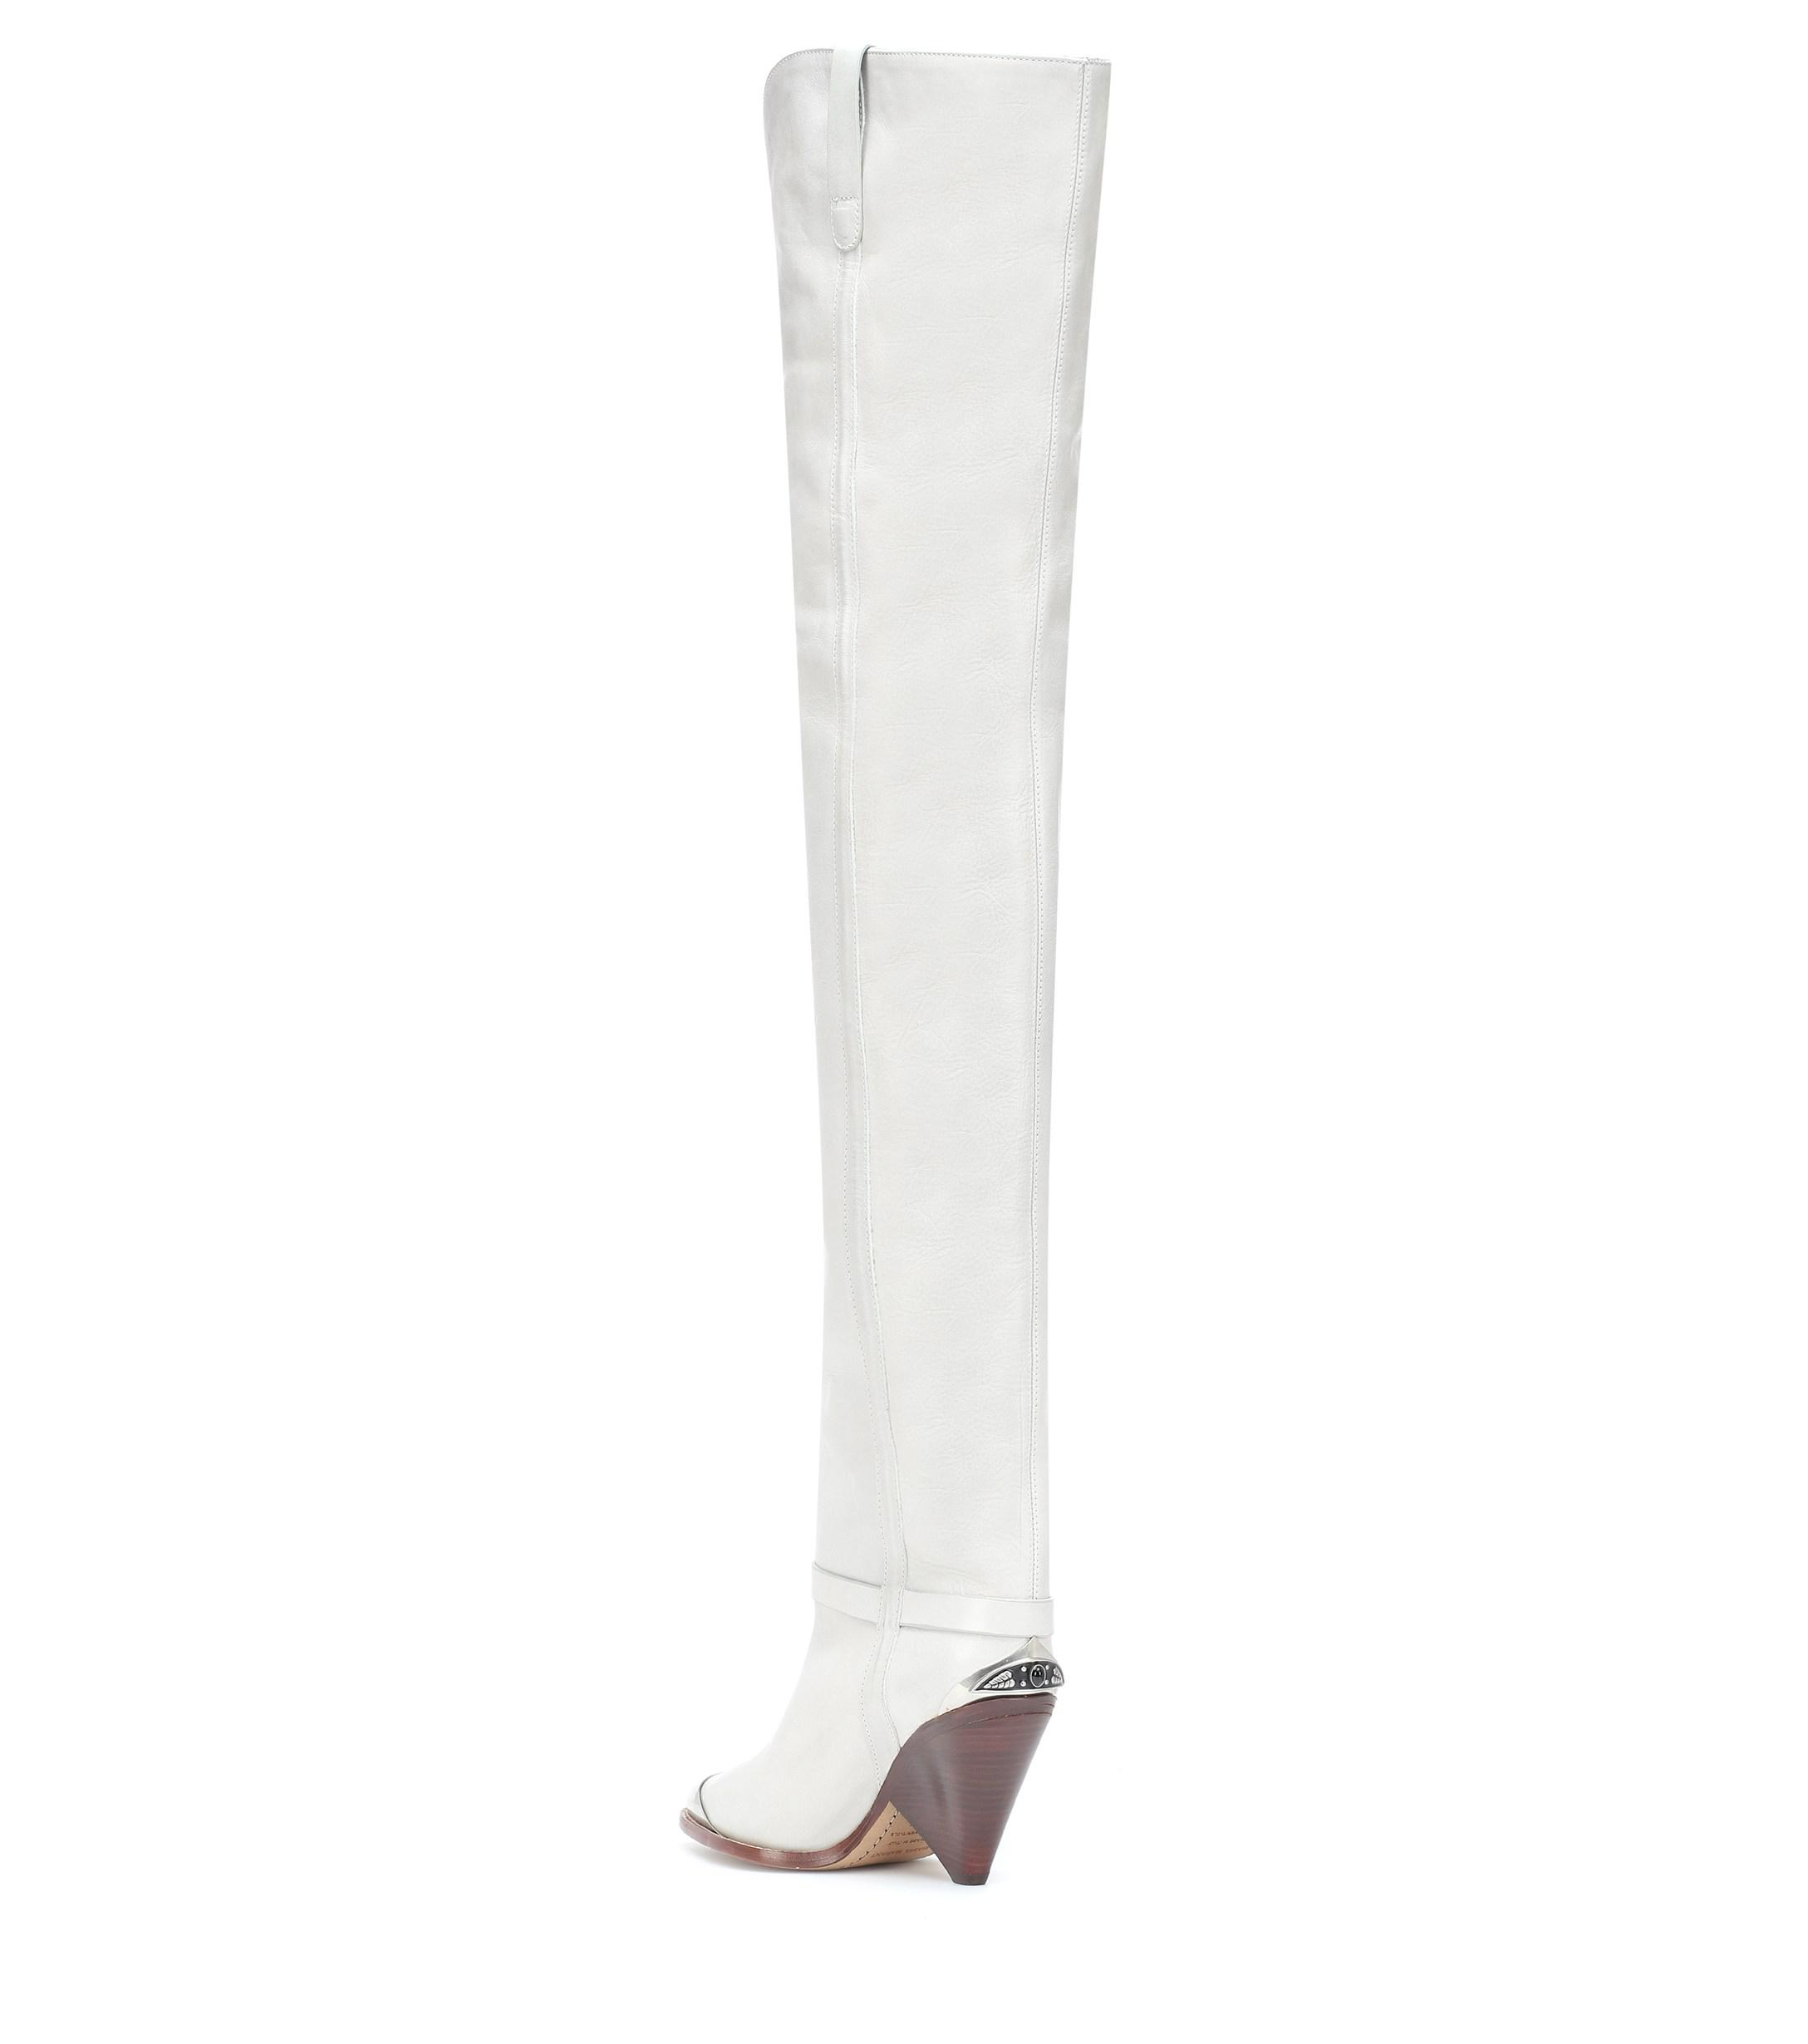 32a4ca2be75 Isabel Marant - White Lafsten Over-the-knee Boots - Lyst. View fullscreen